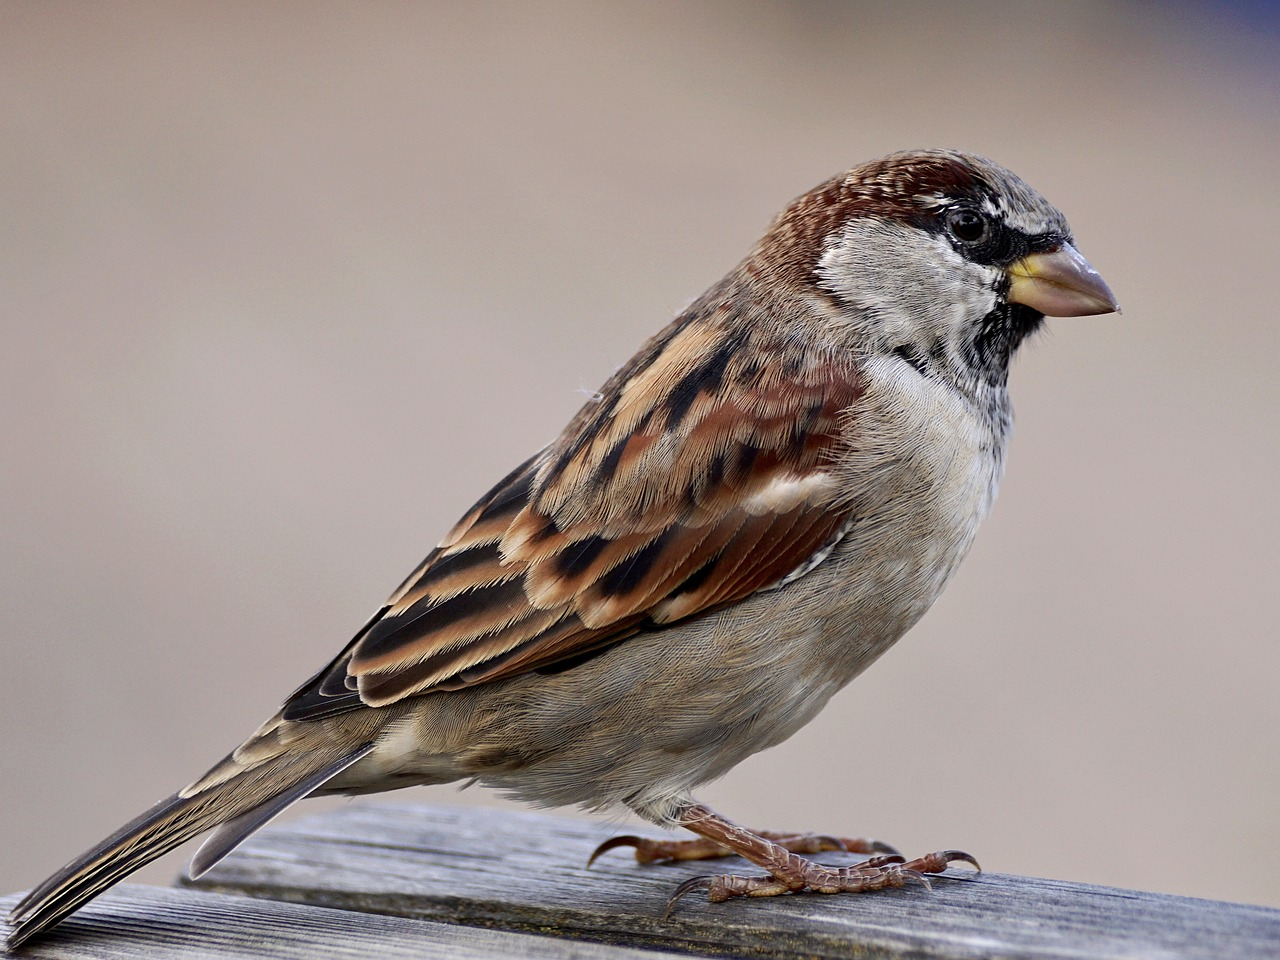 Sparrow. Pixabay License. Free for commercial use. No attribution required